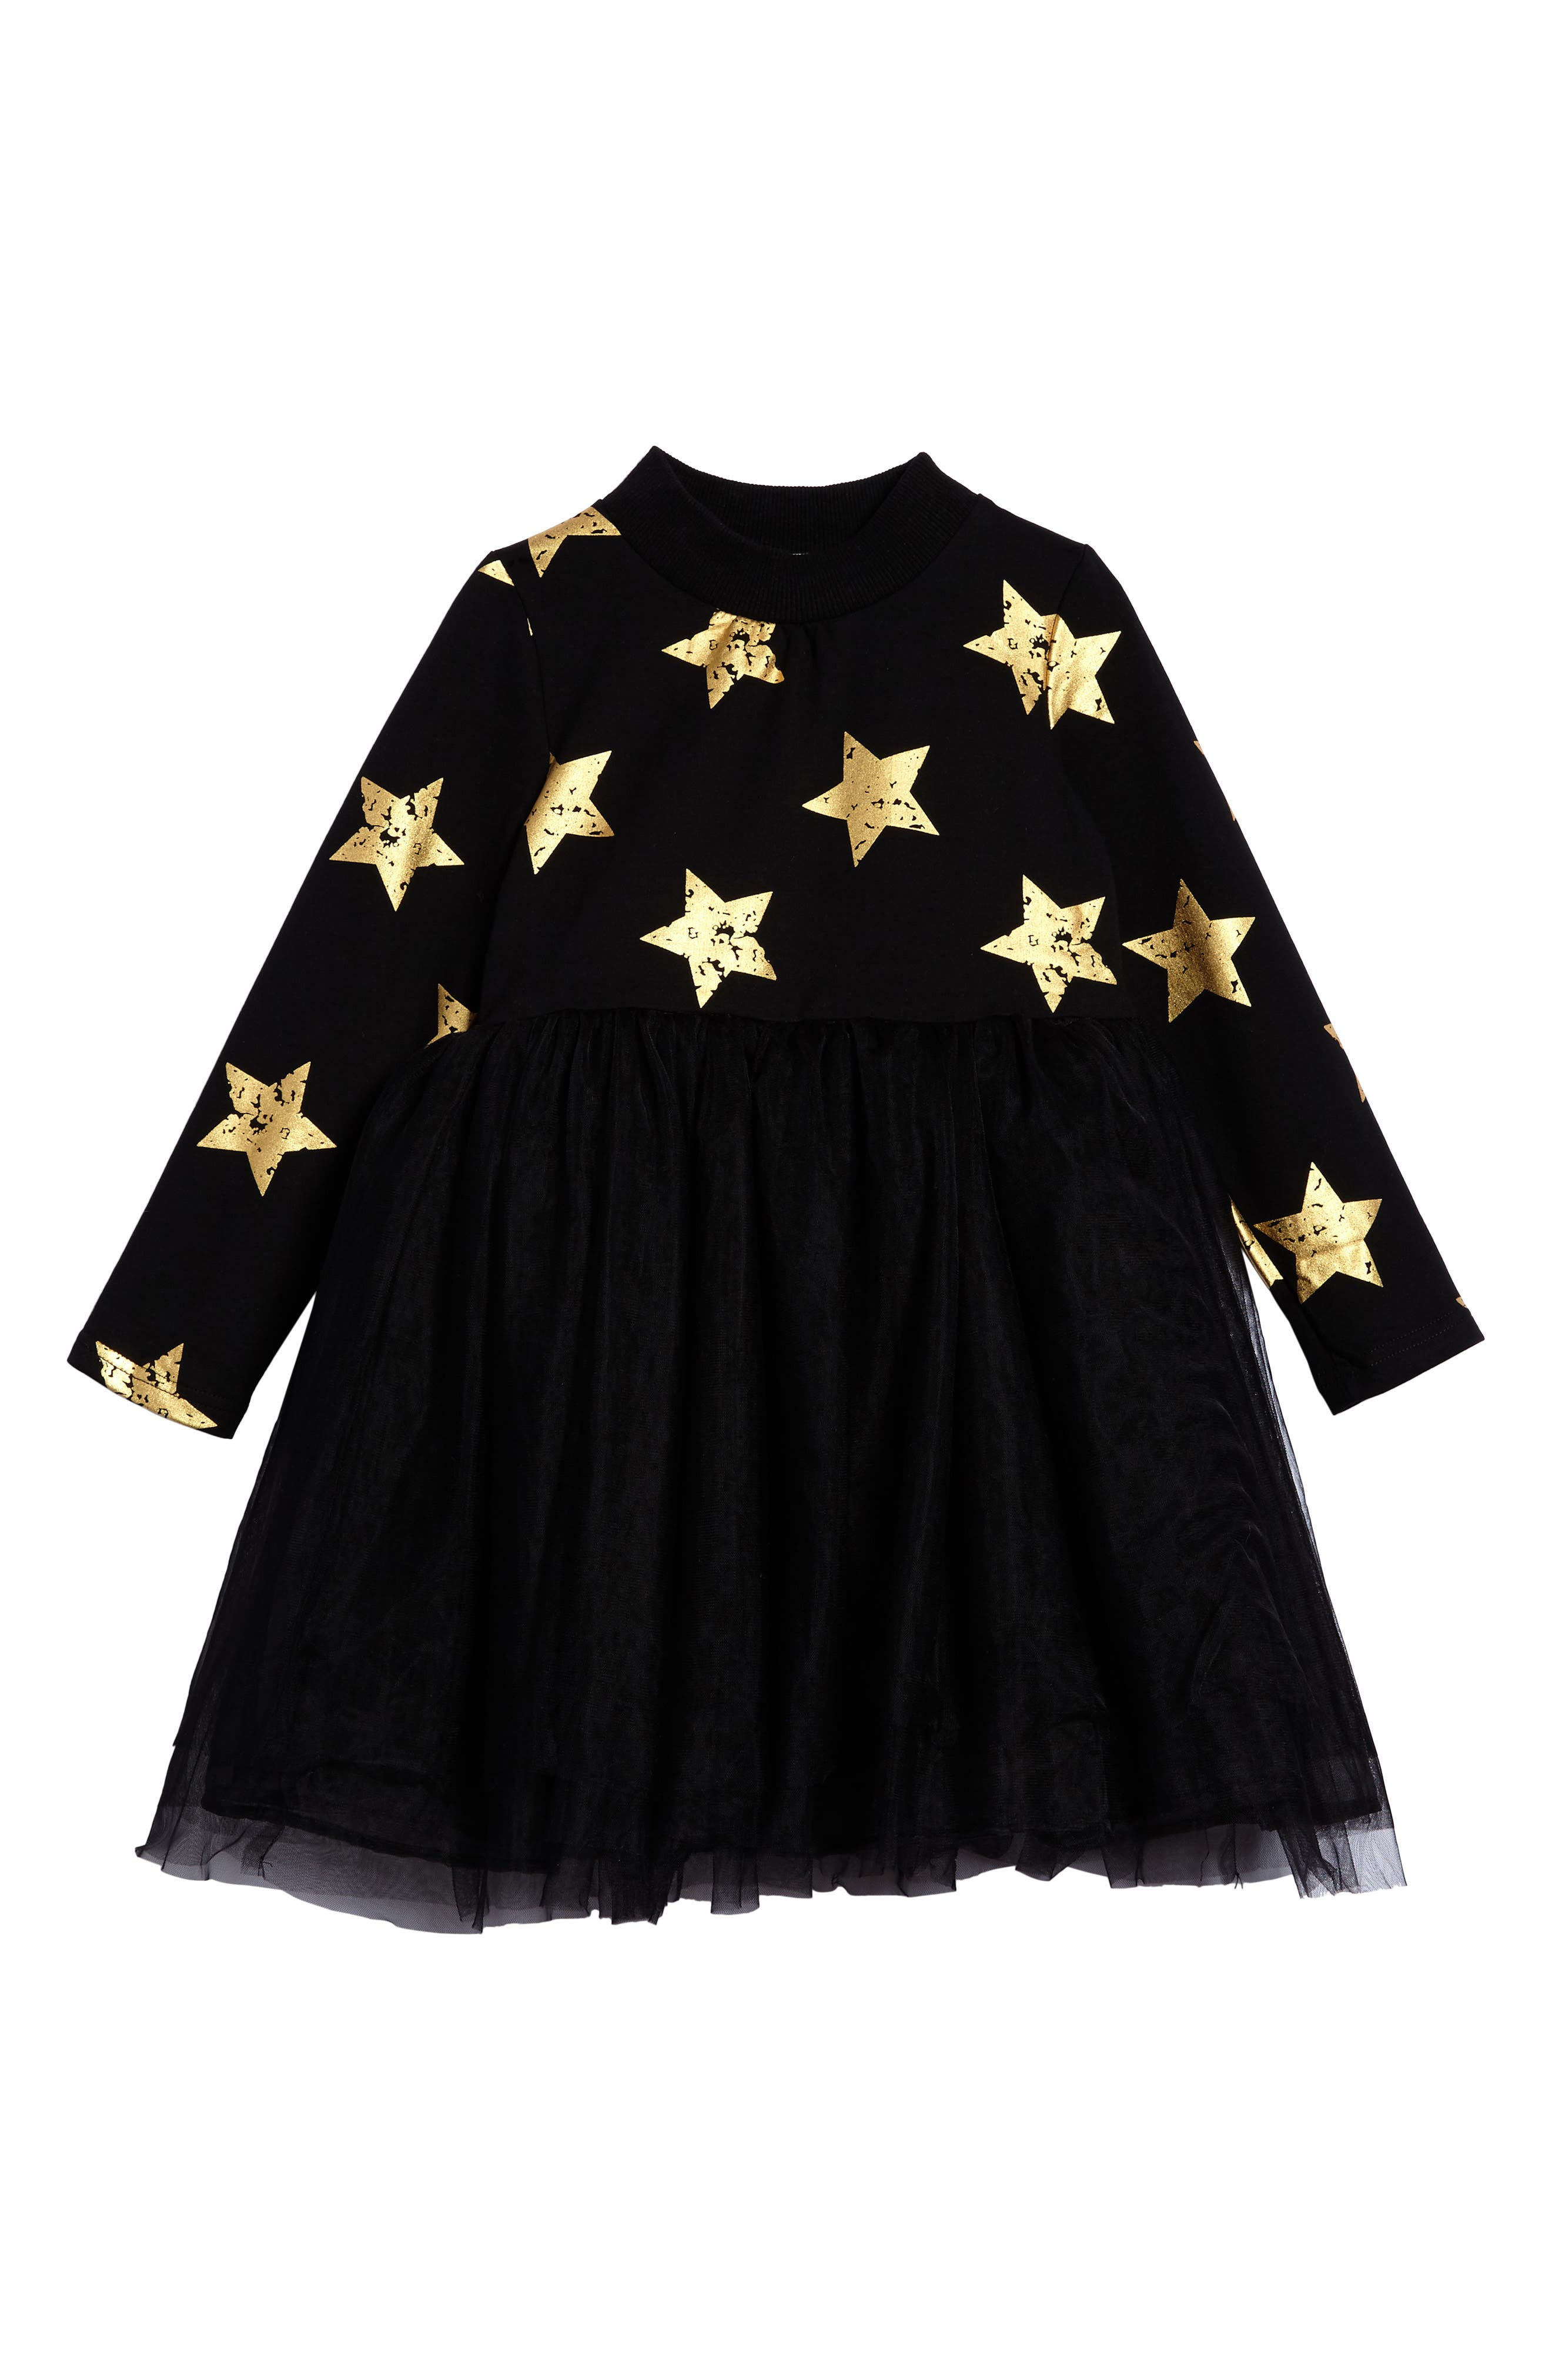 Star Tulle Party Dress,                         Main,                         color, Black